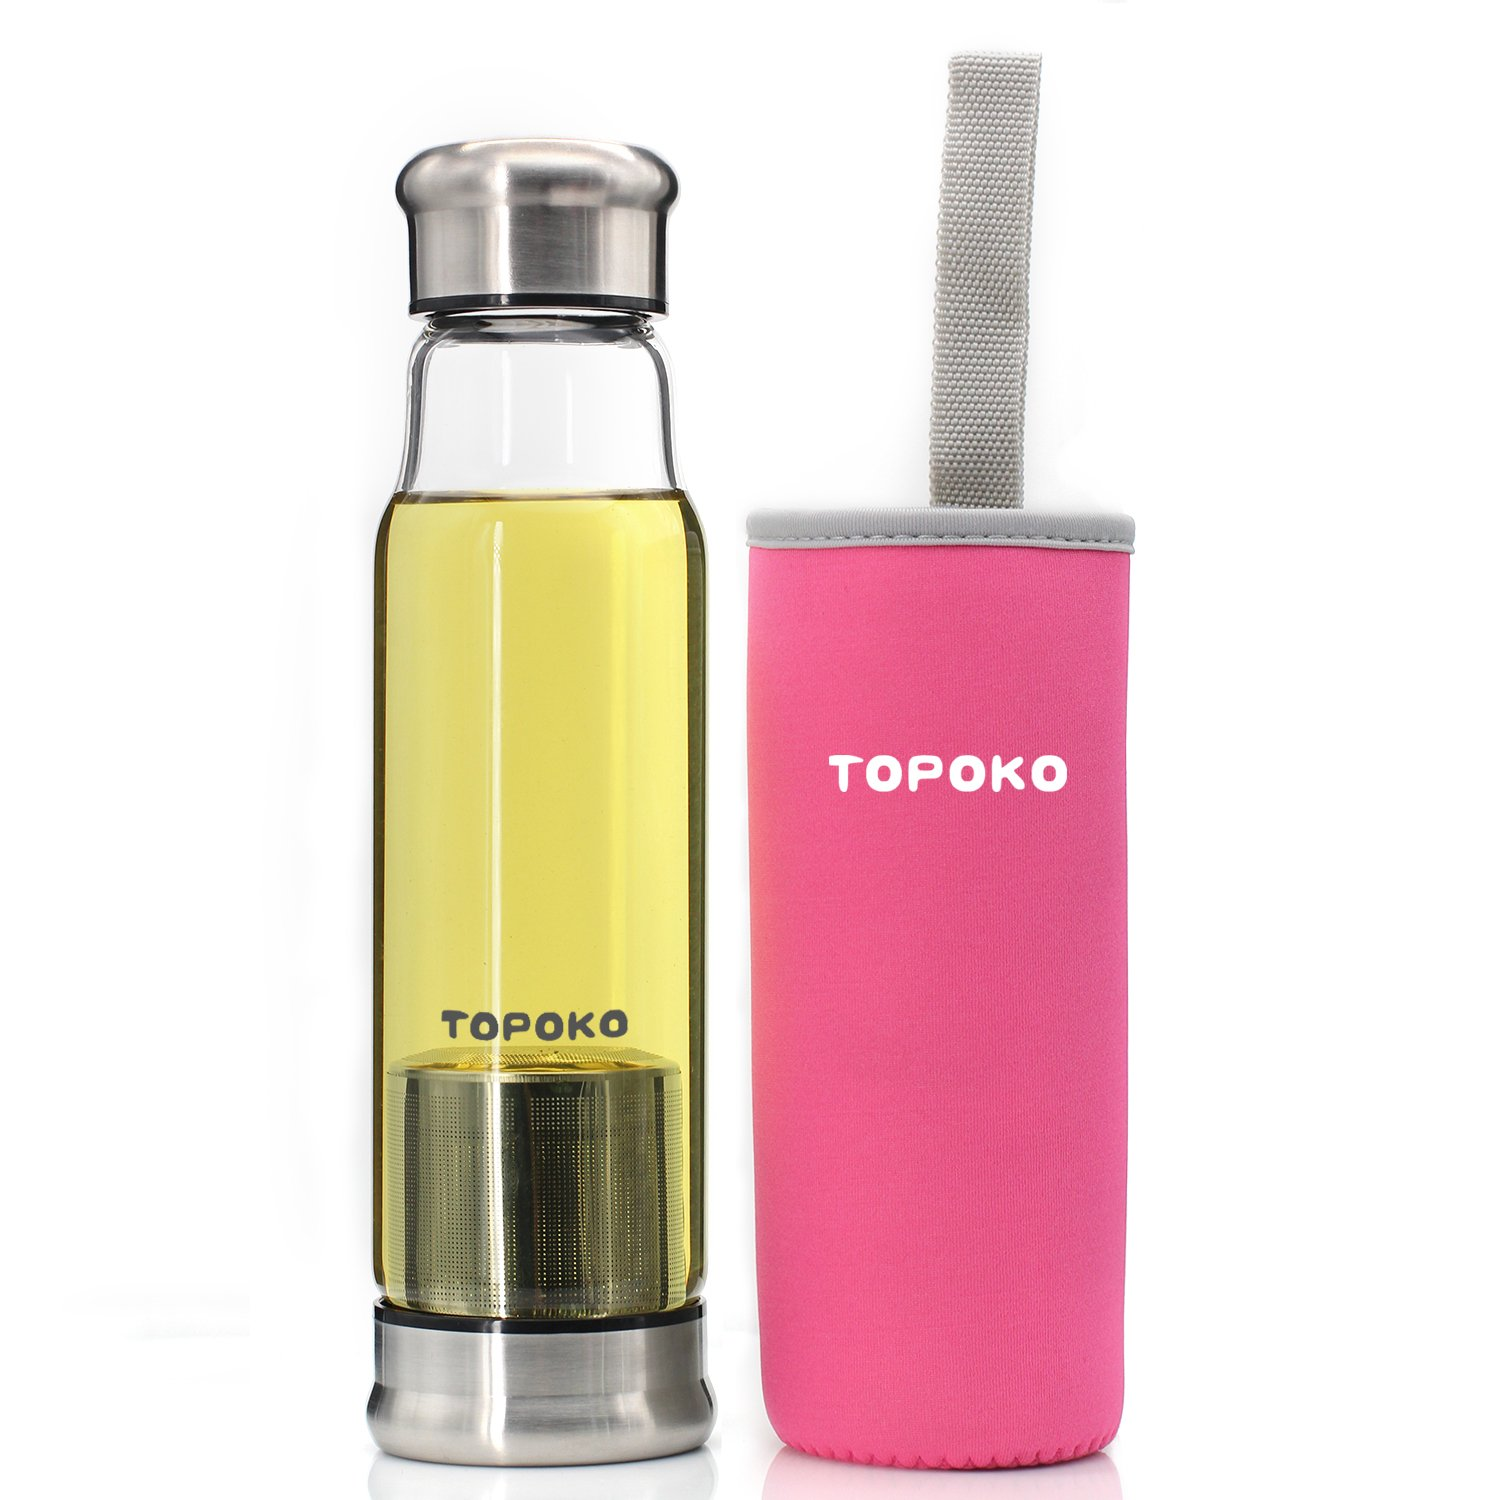 TOPOKO 18.5 OZ Tea Infuser Glass Bottle with Nylon Sleeve. Borosilicate Glass Mug for Drinking Loose Leaf Tea, Cold Brew Coffee, Fruit Juice. Stainless Steel Mesh Filter, Portable and Leak Proof.